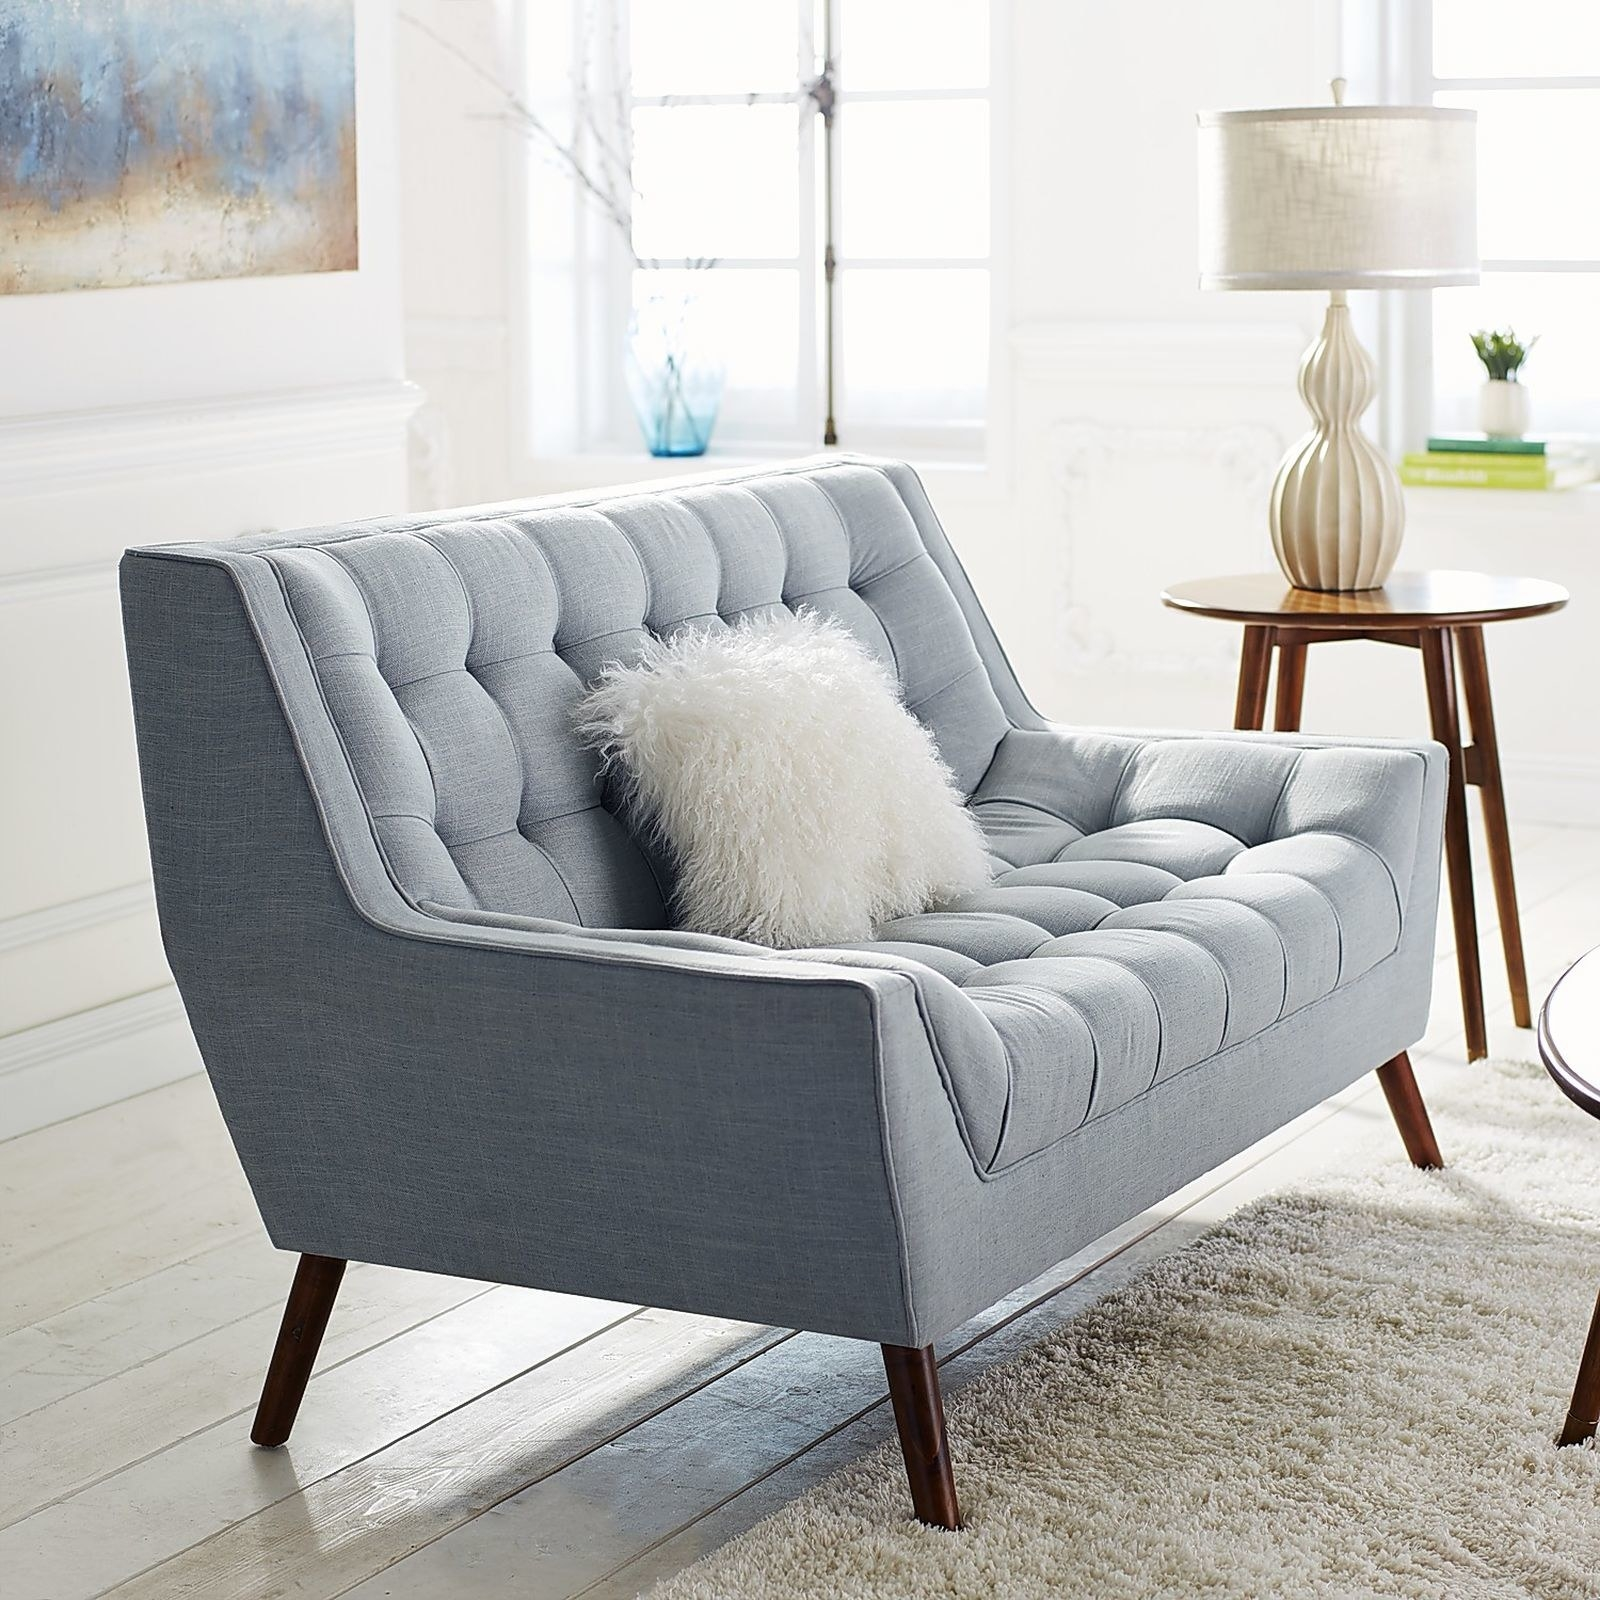 The 18 Best Spots To Buy Furniture Online: 29 Of The Best Places To Buy A Sofa Online